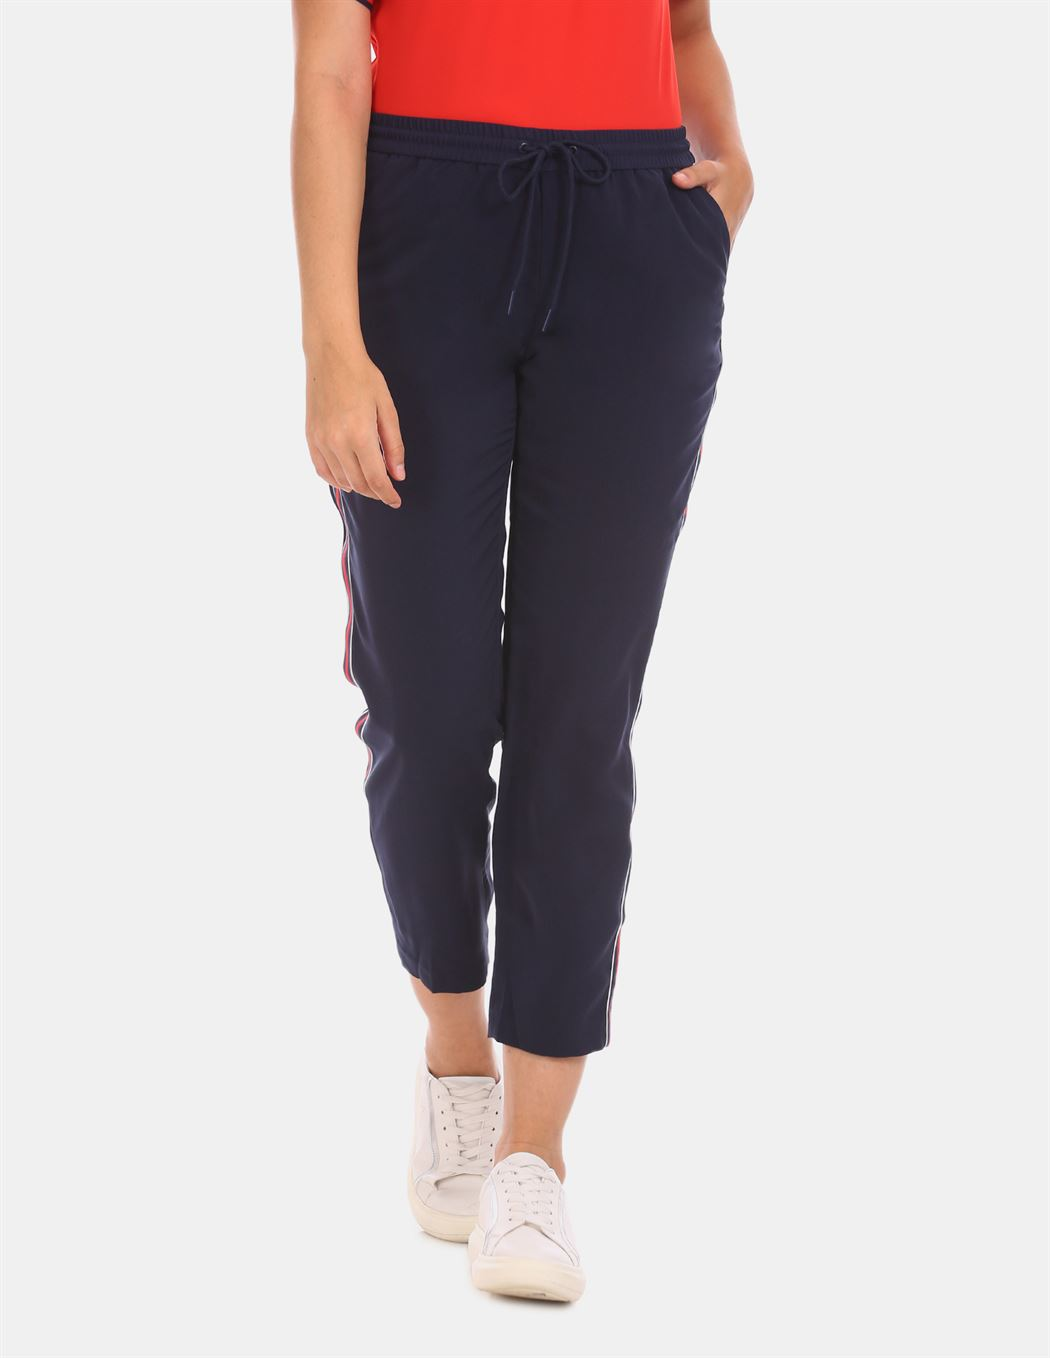 Tommy Hilfiger Women Casual Wear Blue Track Pant